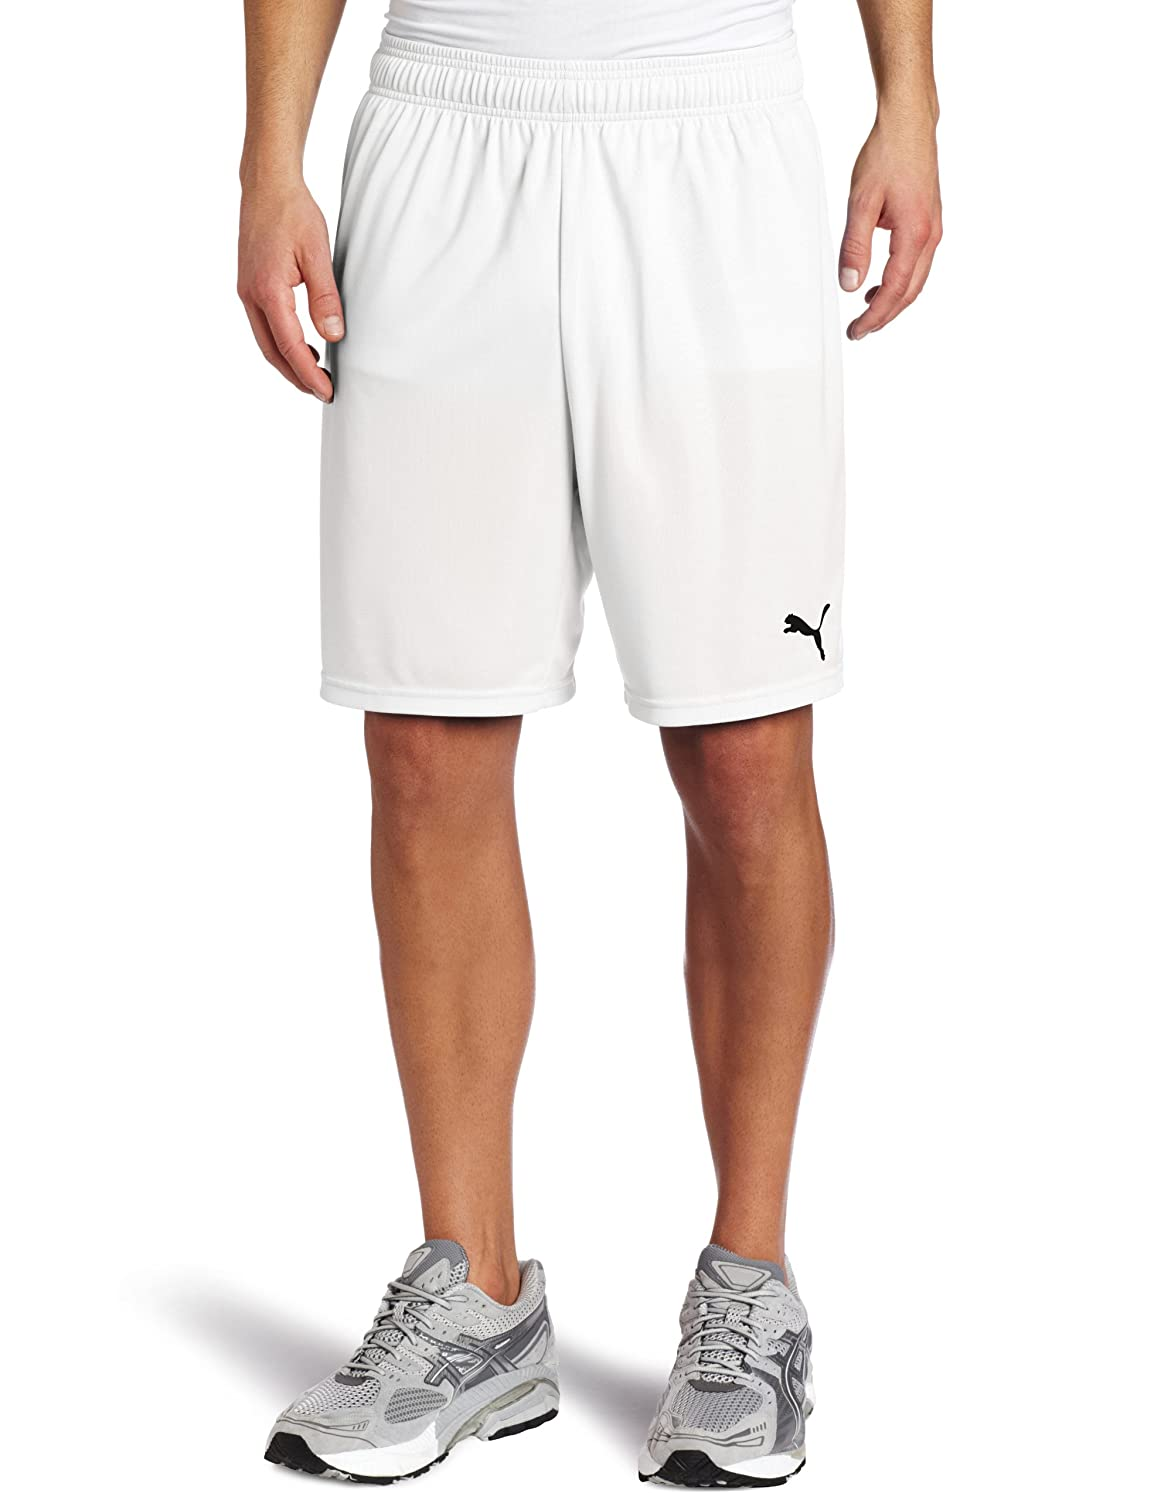 PUMA Men's Team Shorts without Inner Slip PUMA North America 701275-1